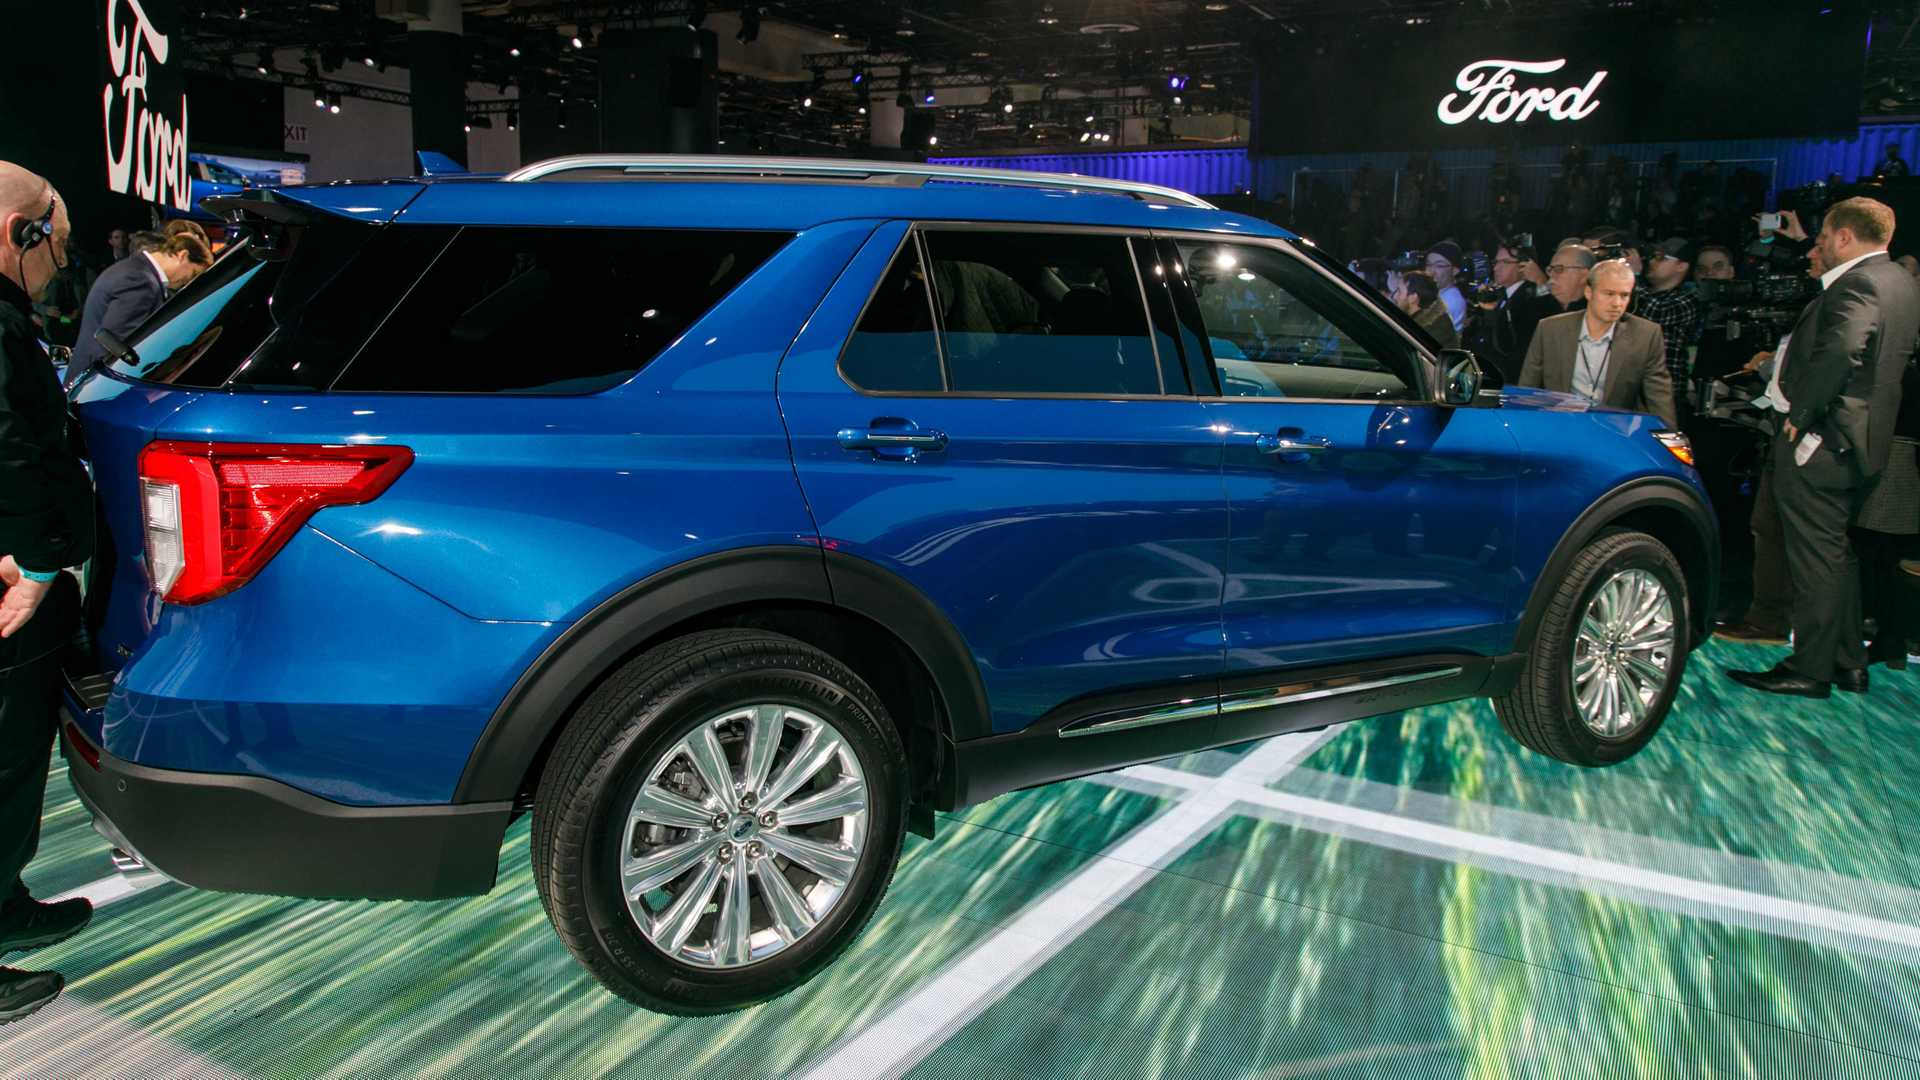 64 New 2020 Ford Explorer Hybrid Mpg Price And Release Date